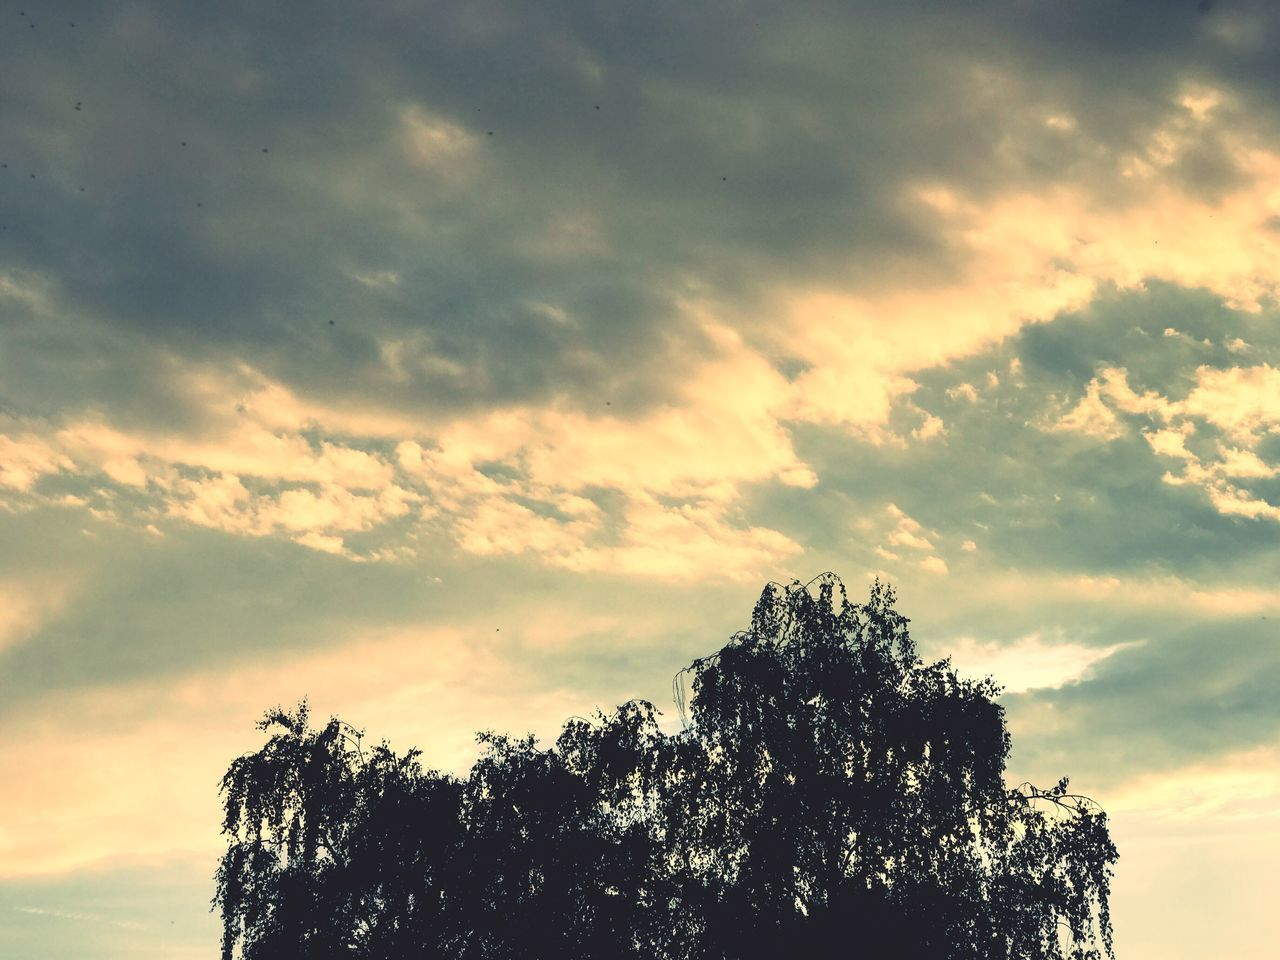 tree, sky, low angle view, nature, beauty in nature, sunset, tranquility, silhouette, scenics, no people, outdoors, cloud - sky, growth, day